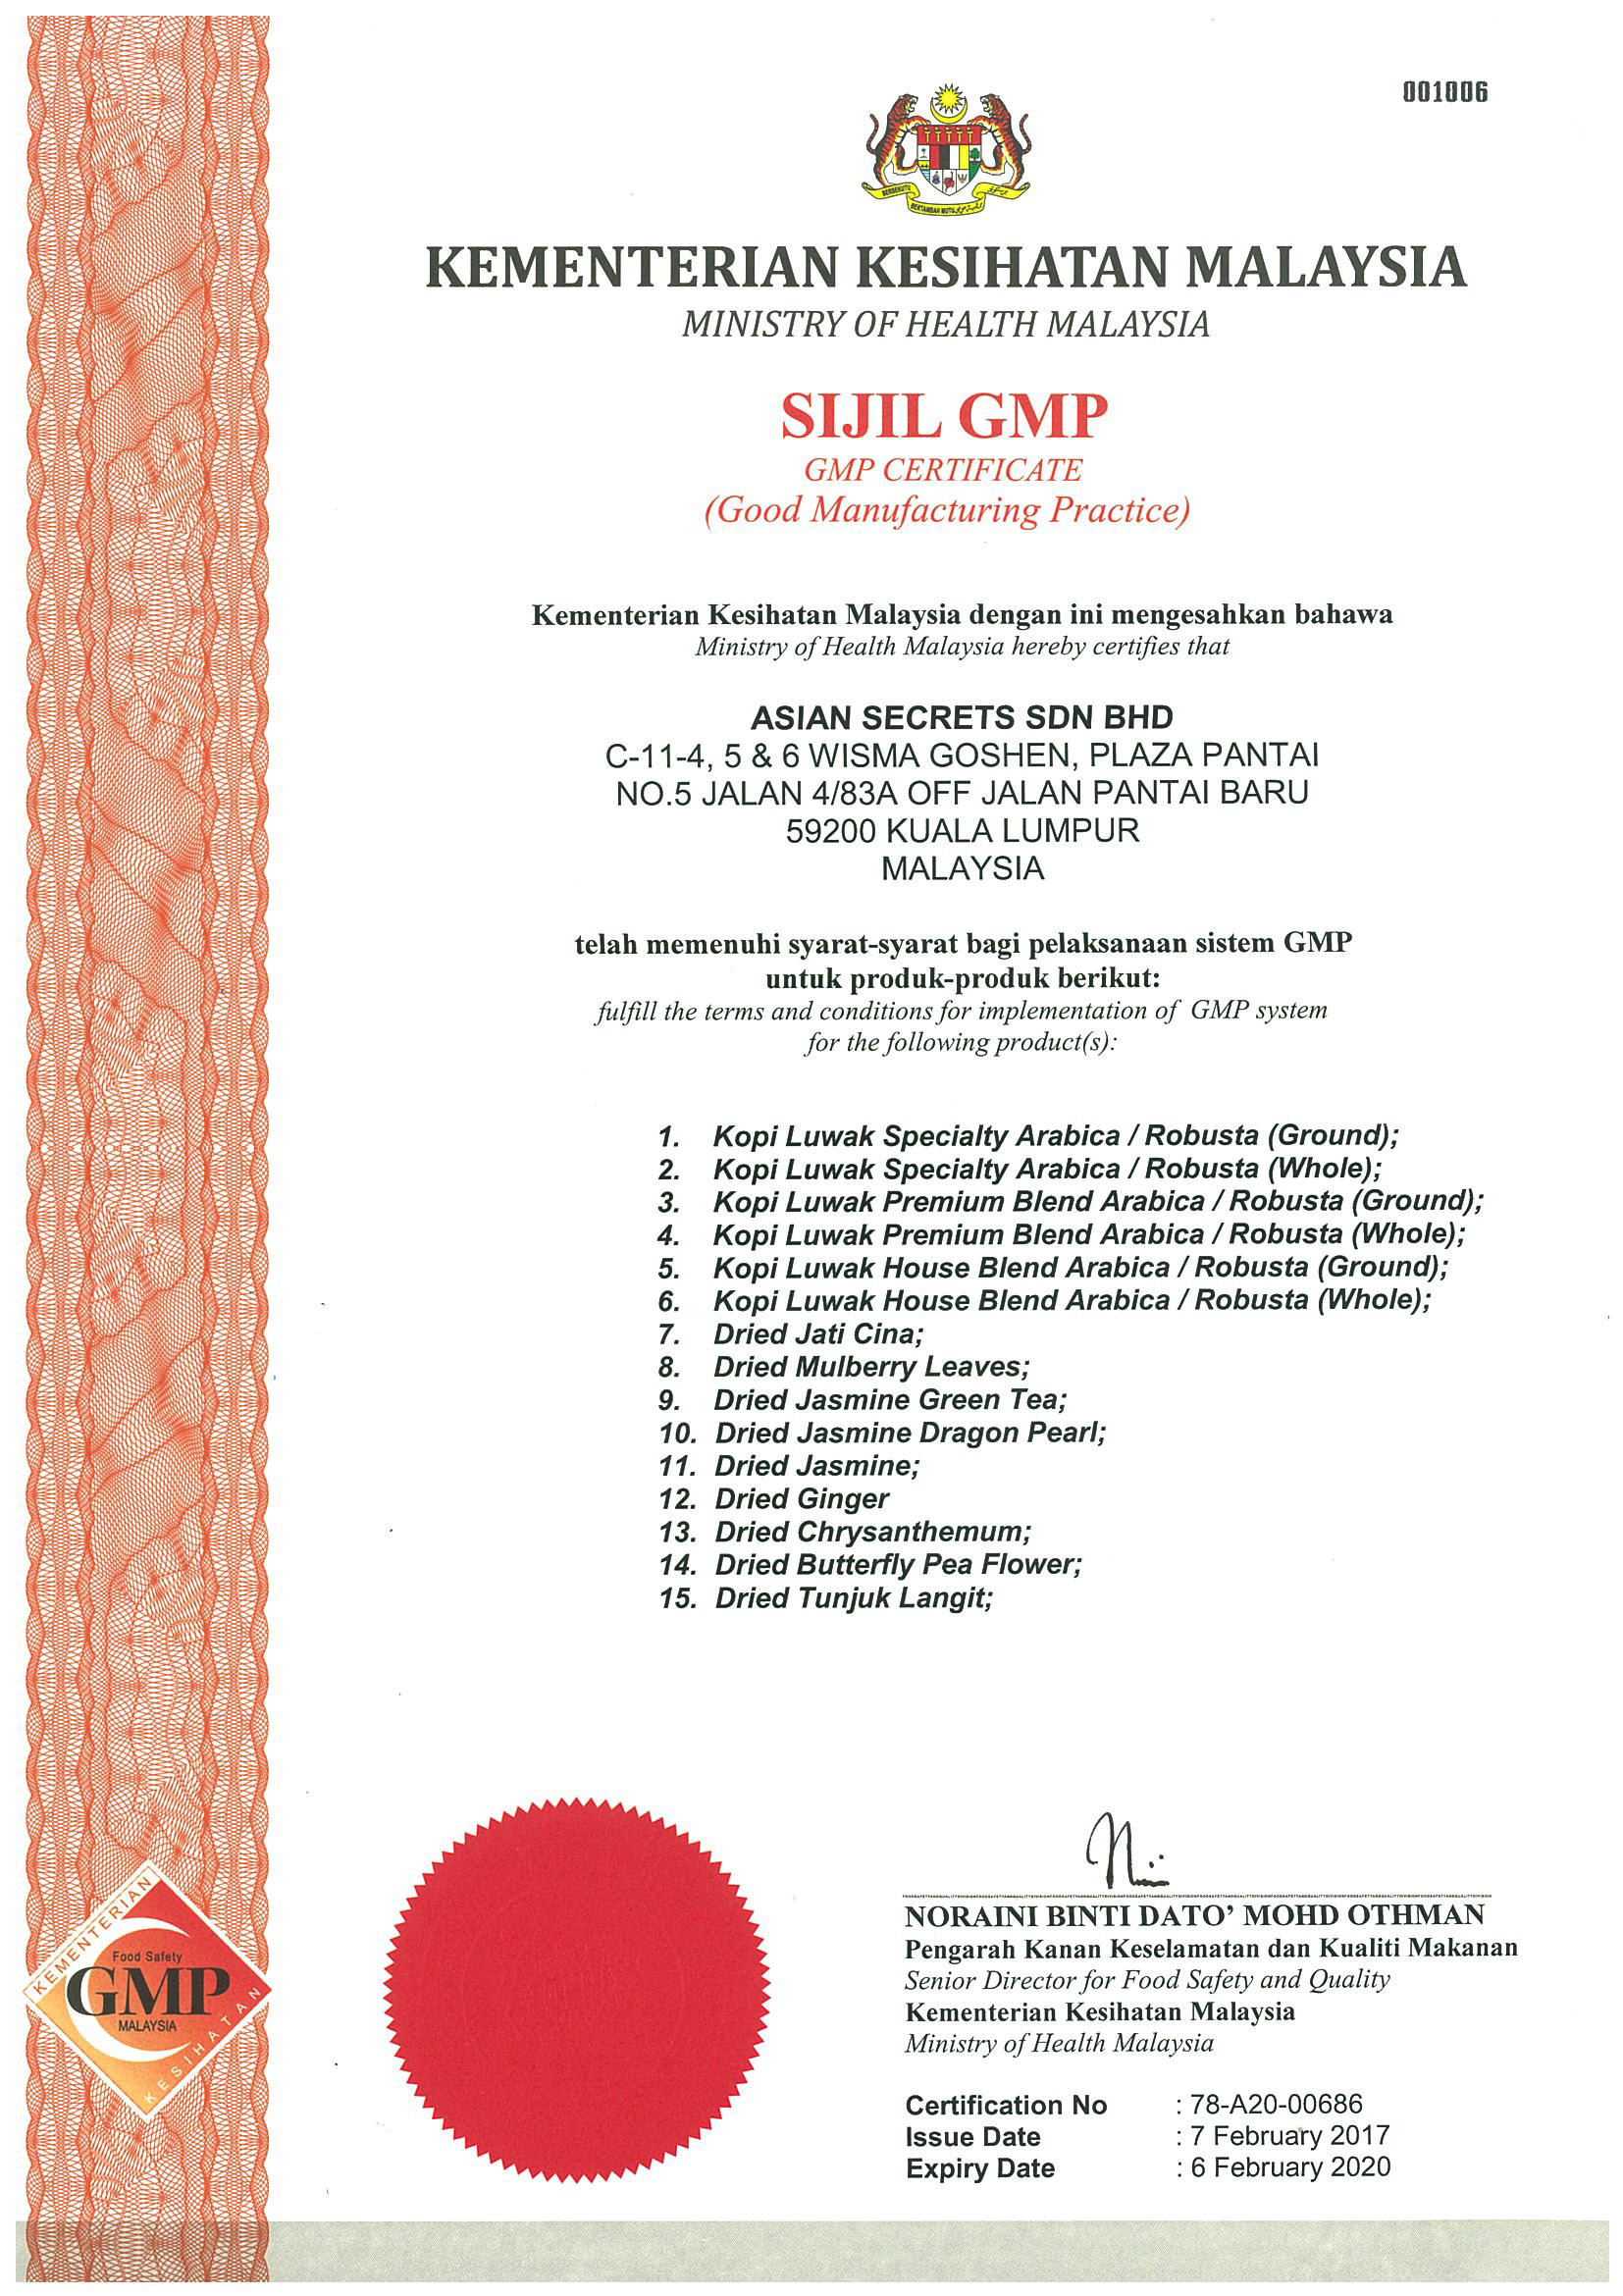 GMP Certificate (Good Manufacturing Practice)